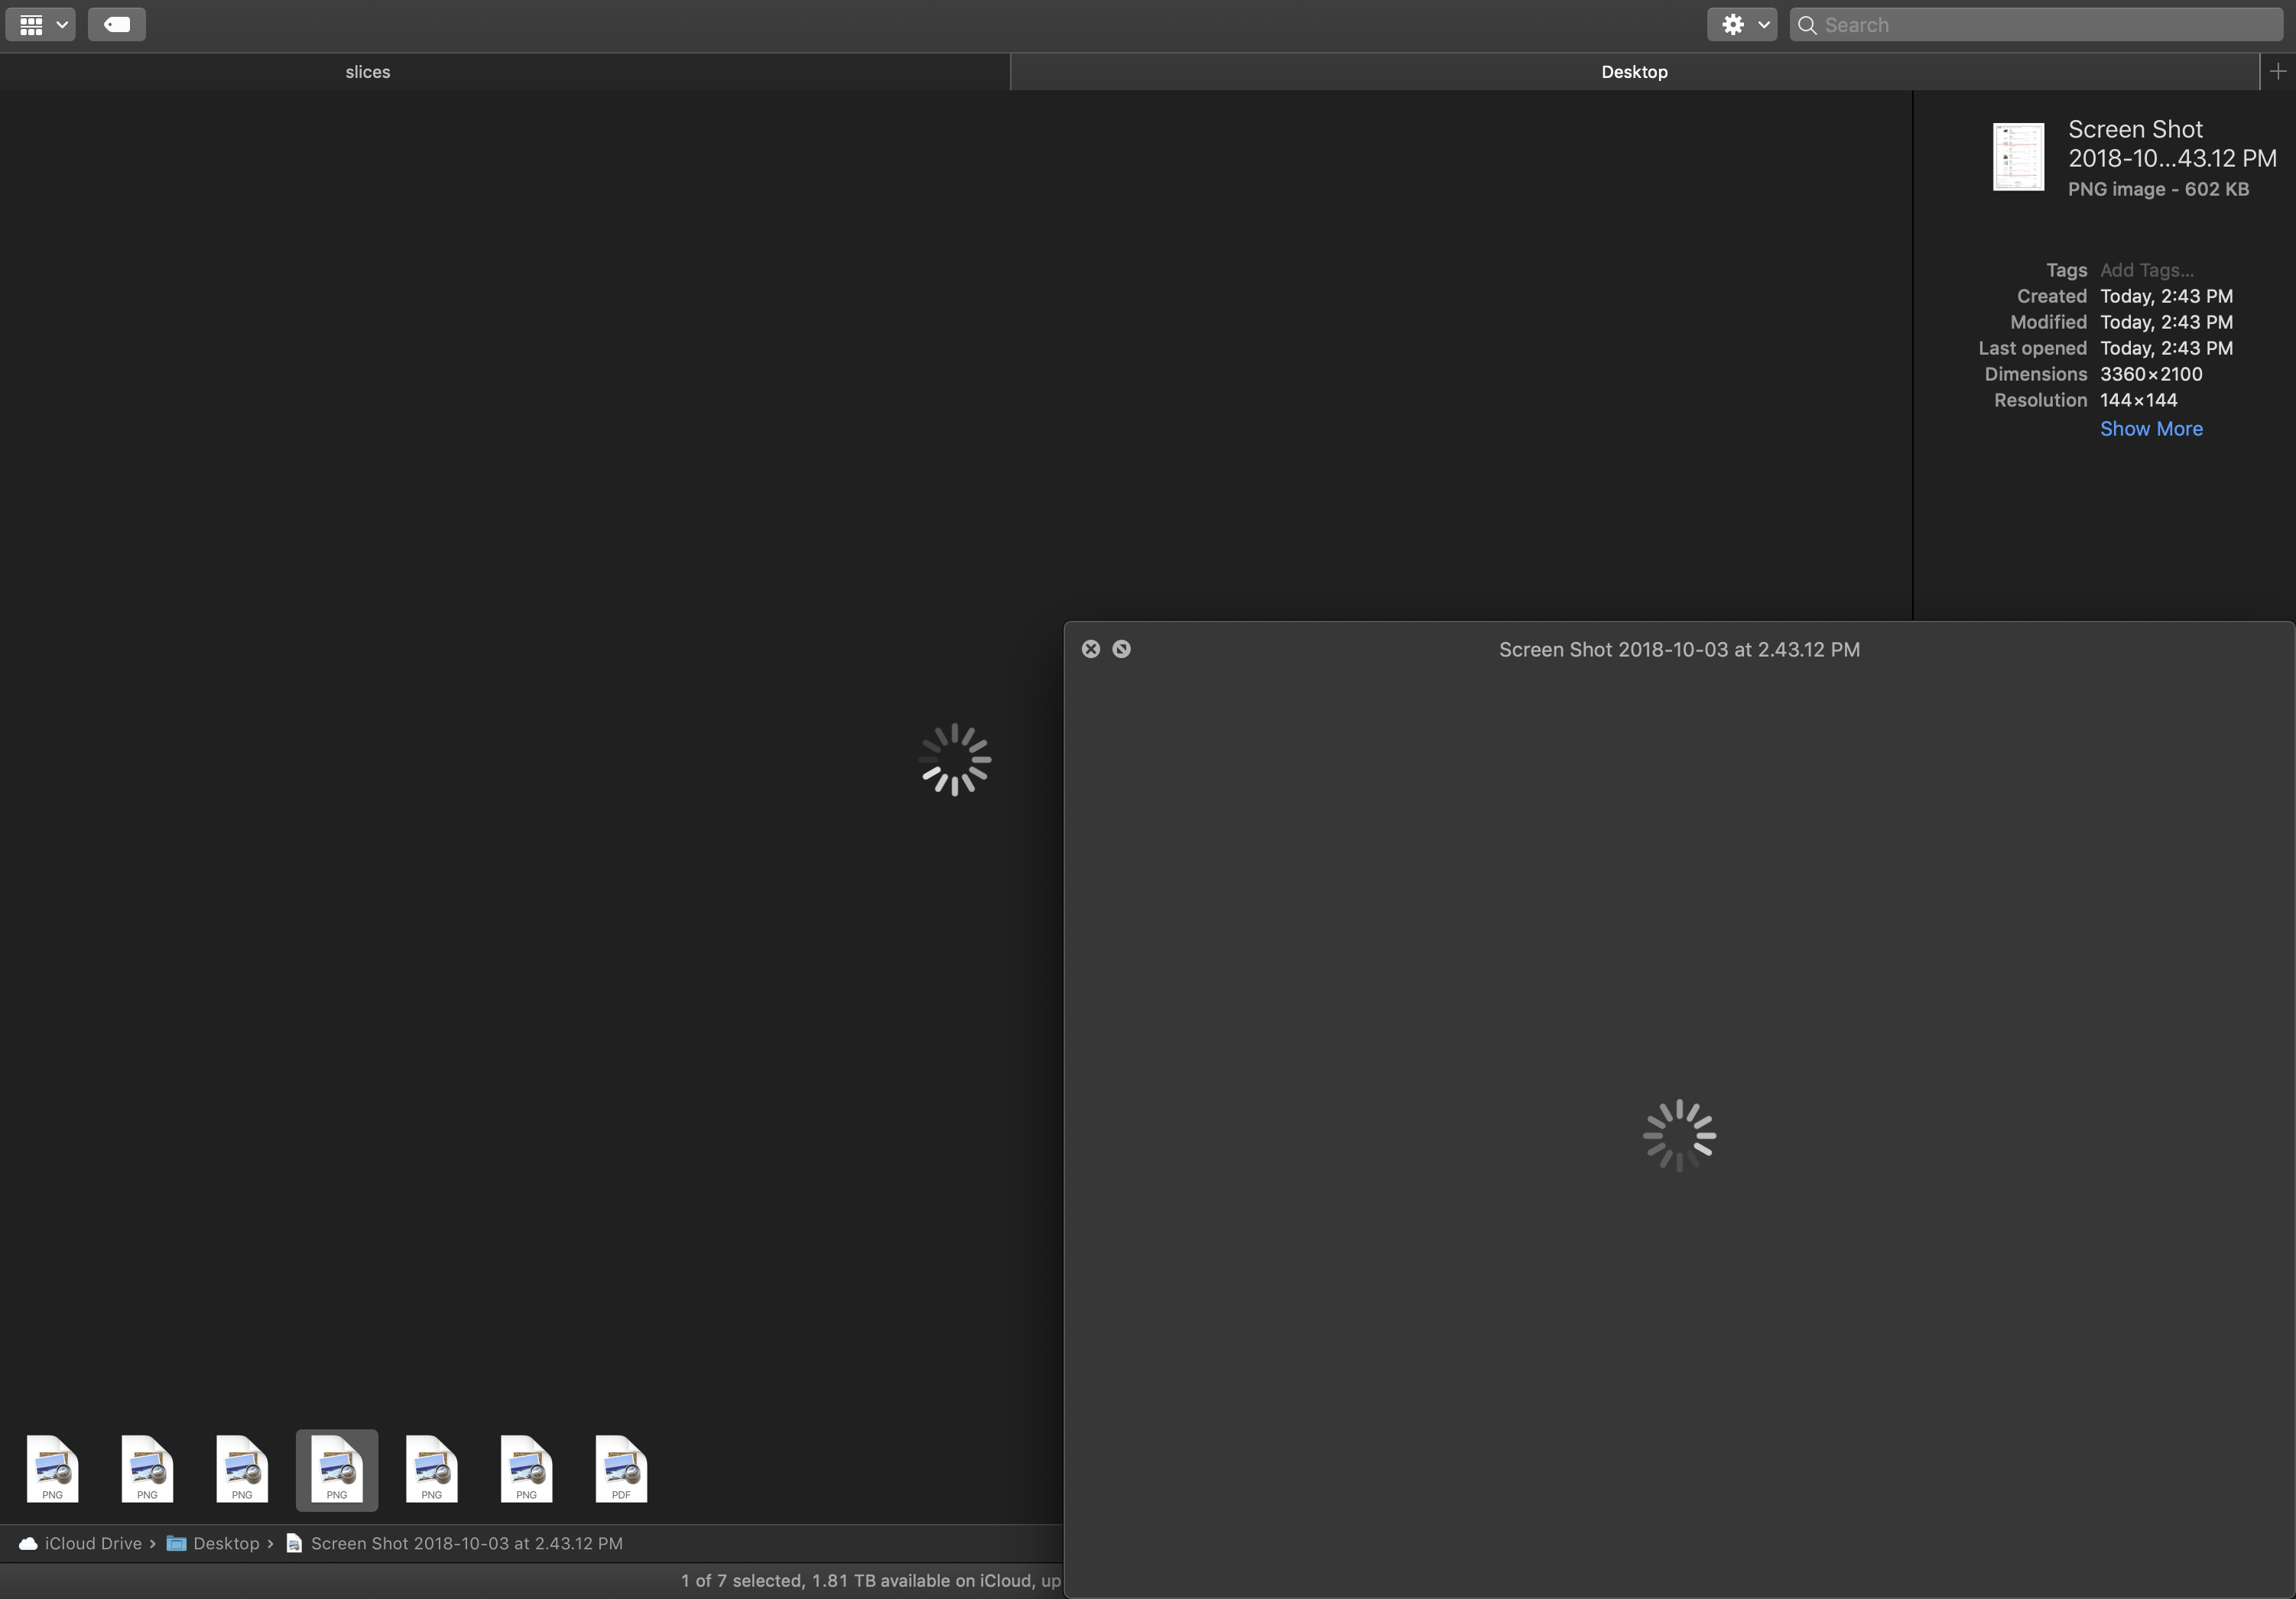 No preview for file thumbnails • Mojave - Apple Community